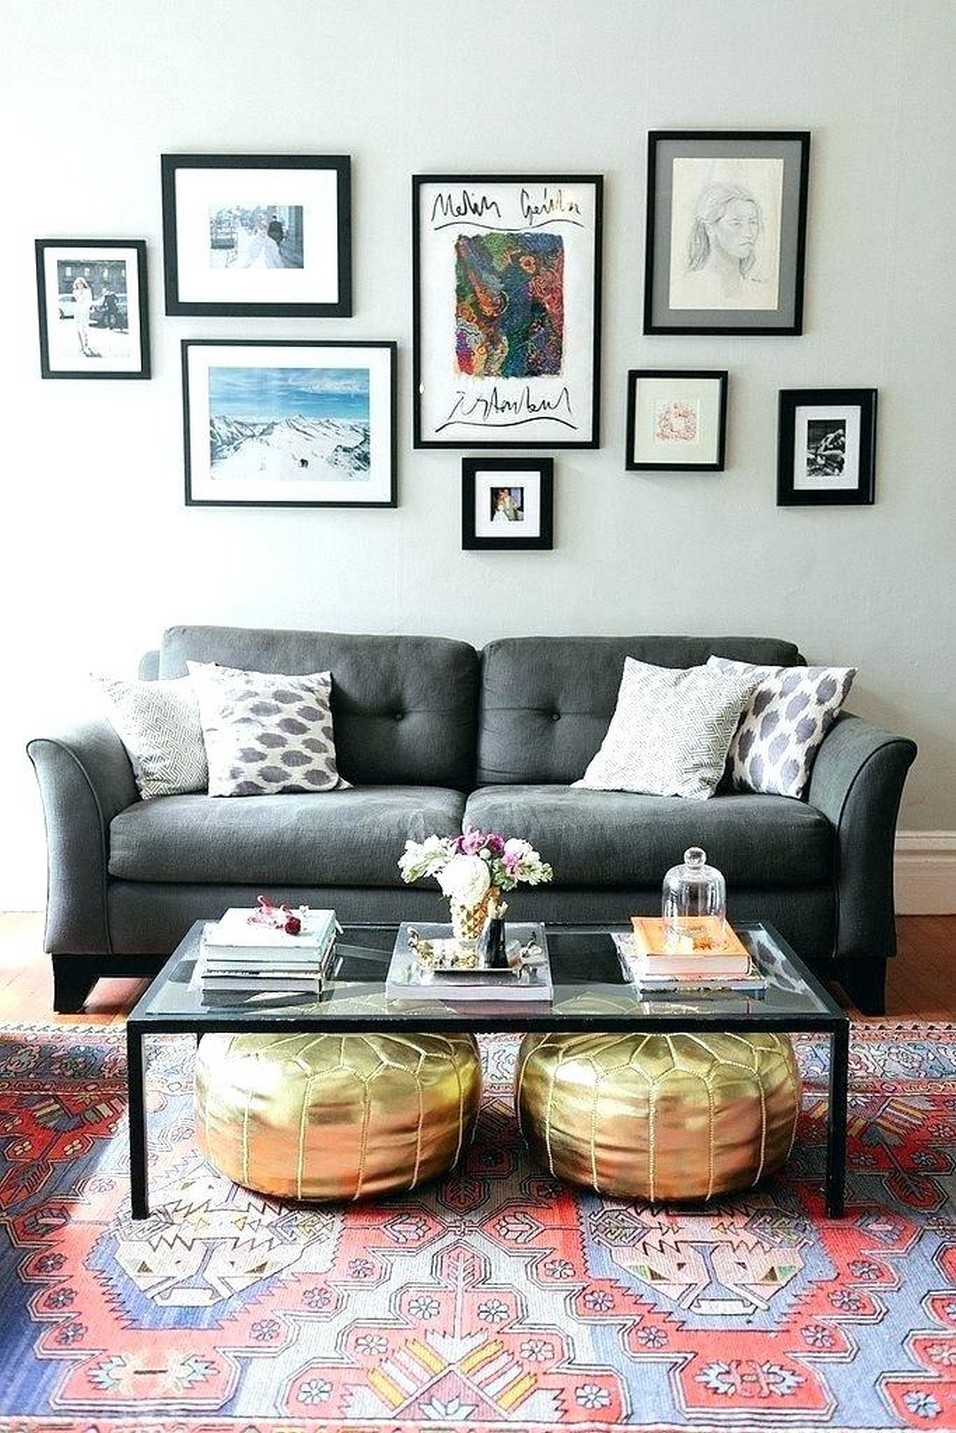 45+ First Living Room Decor Concept